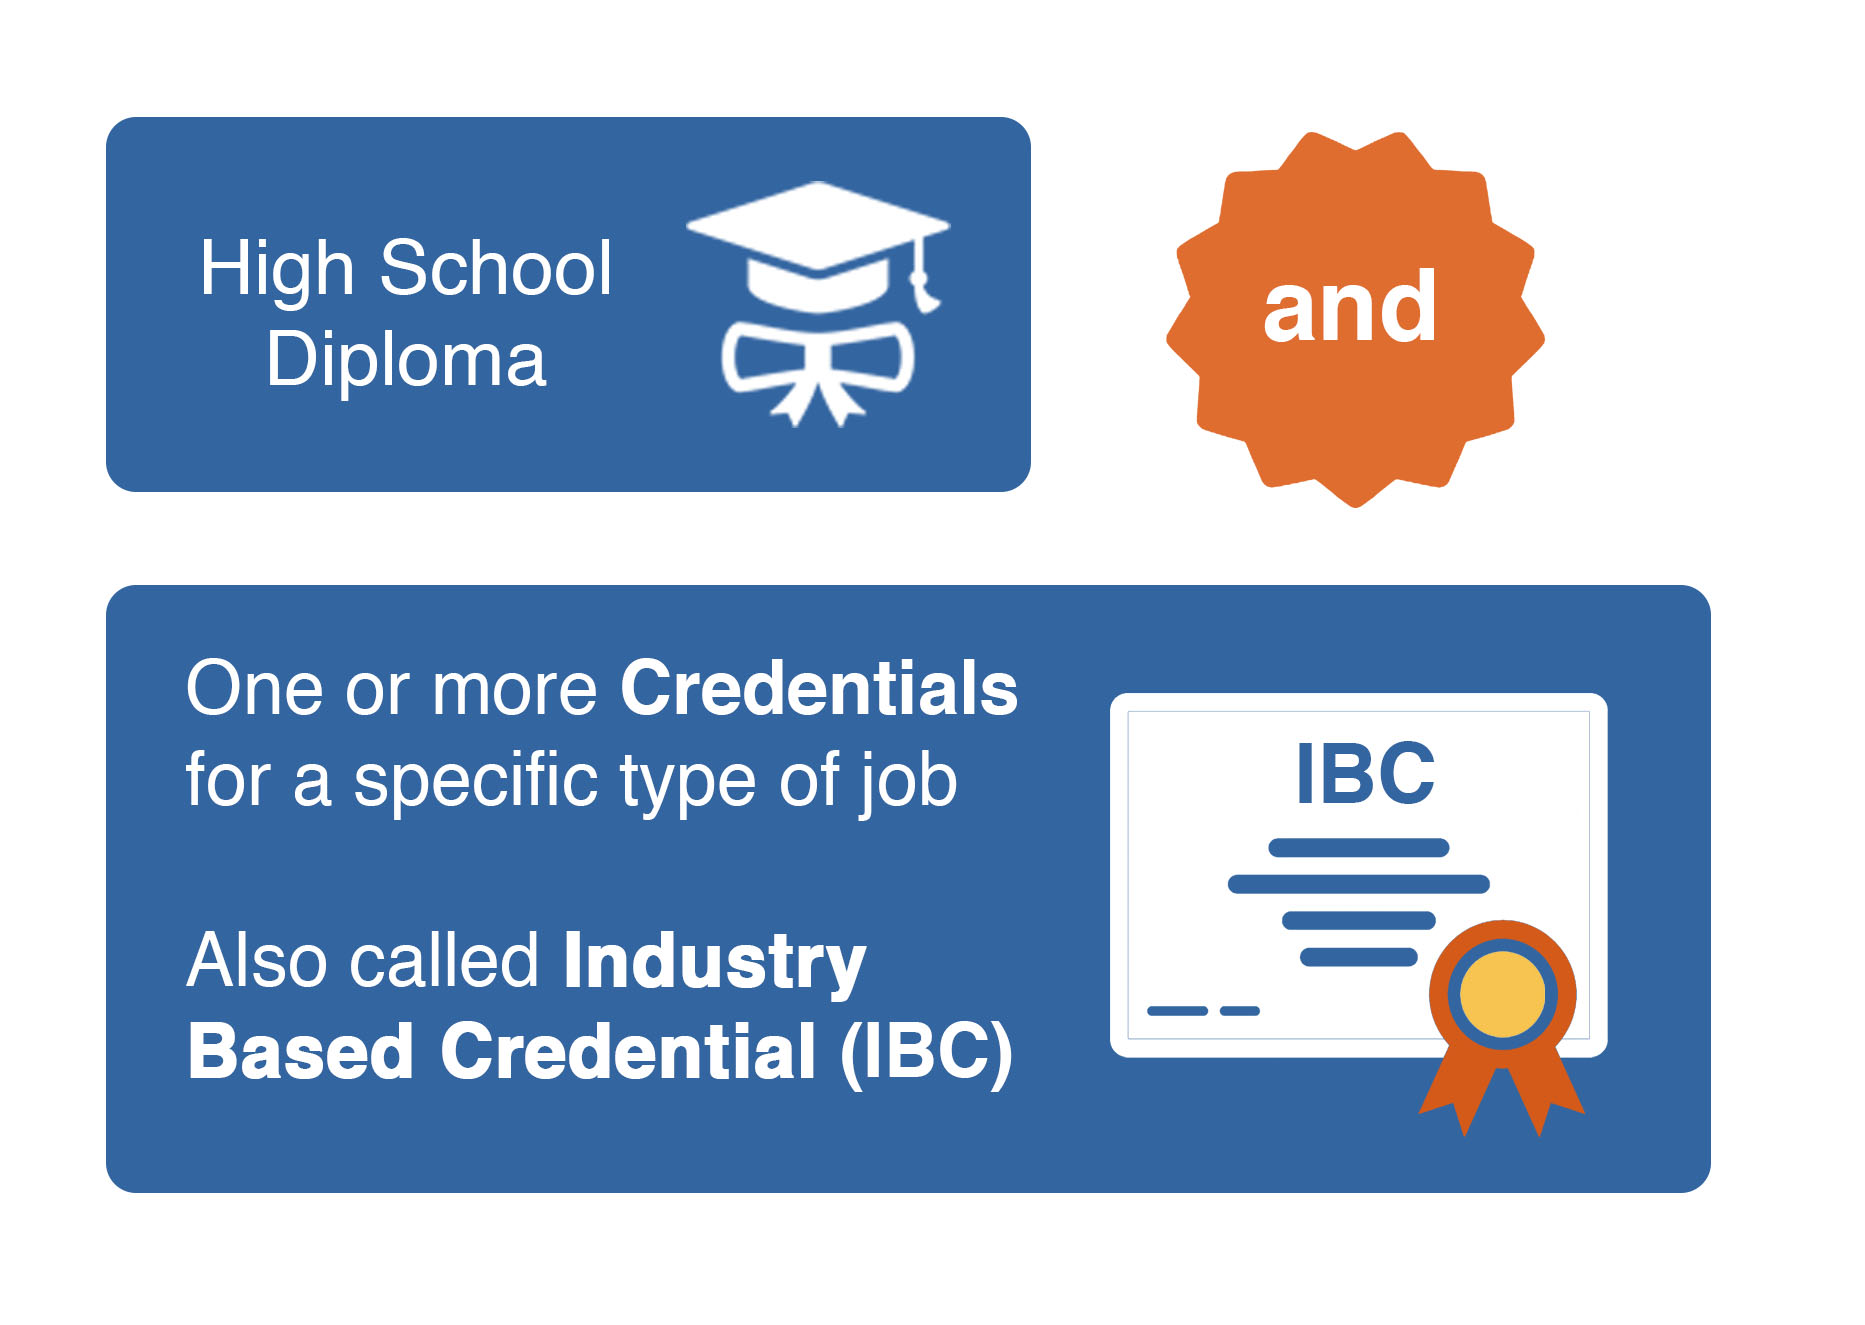 Image of a graduation cap and diplomas with text 'high school diploma and one or more credentials for a specific job, also called industry based credential (IBC)'